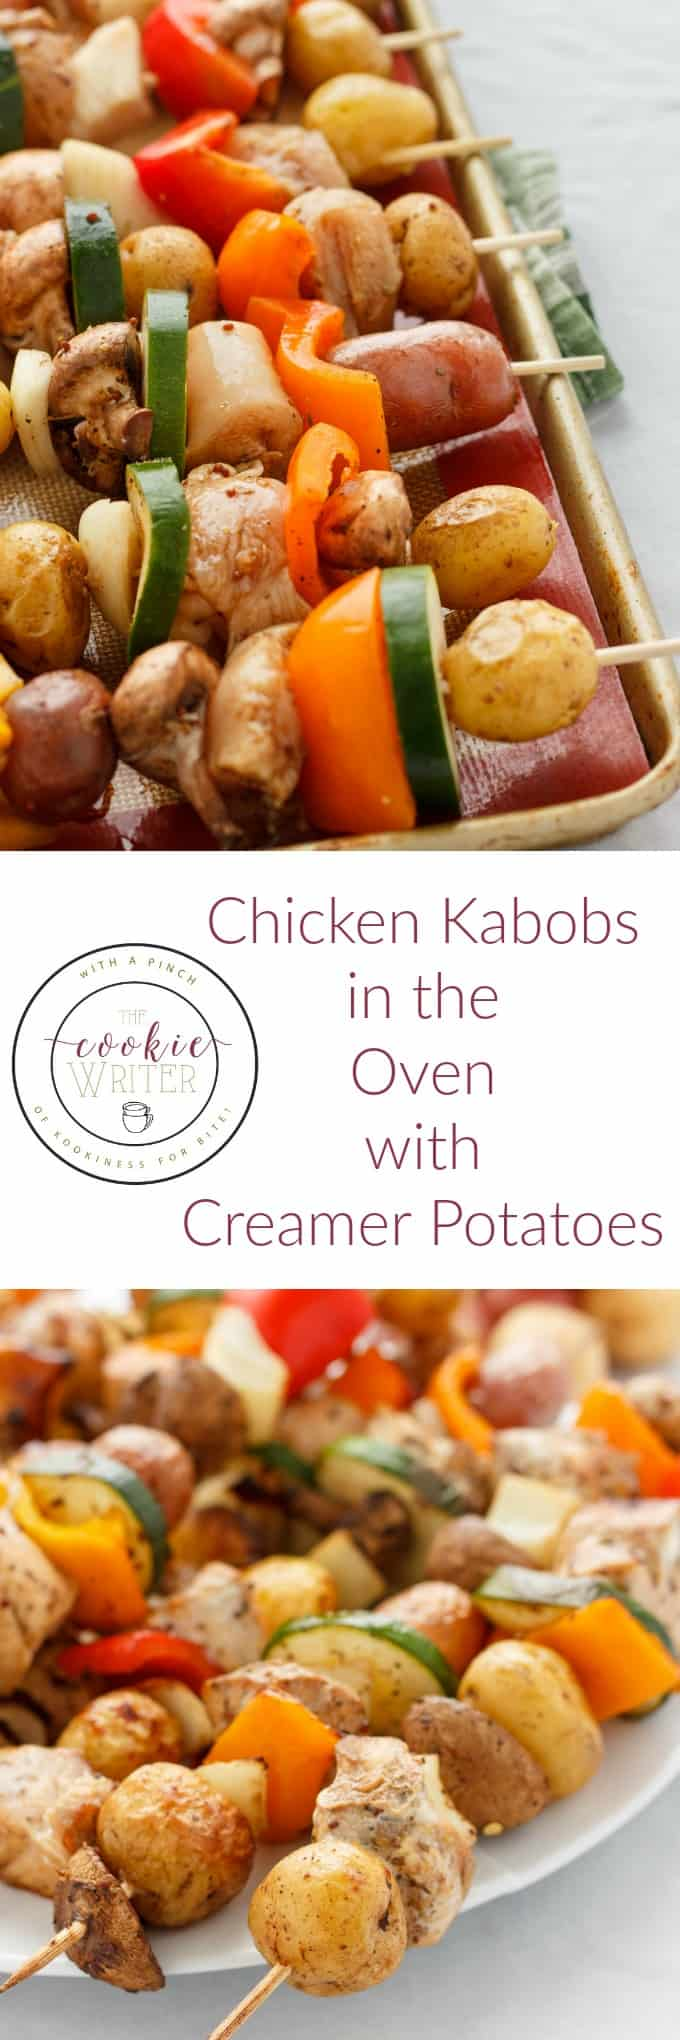 Shish Kabobs in the Oven (Chicken and Tofu Varietals!) #chicken